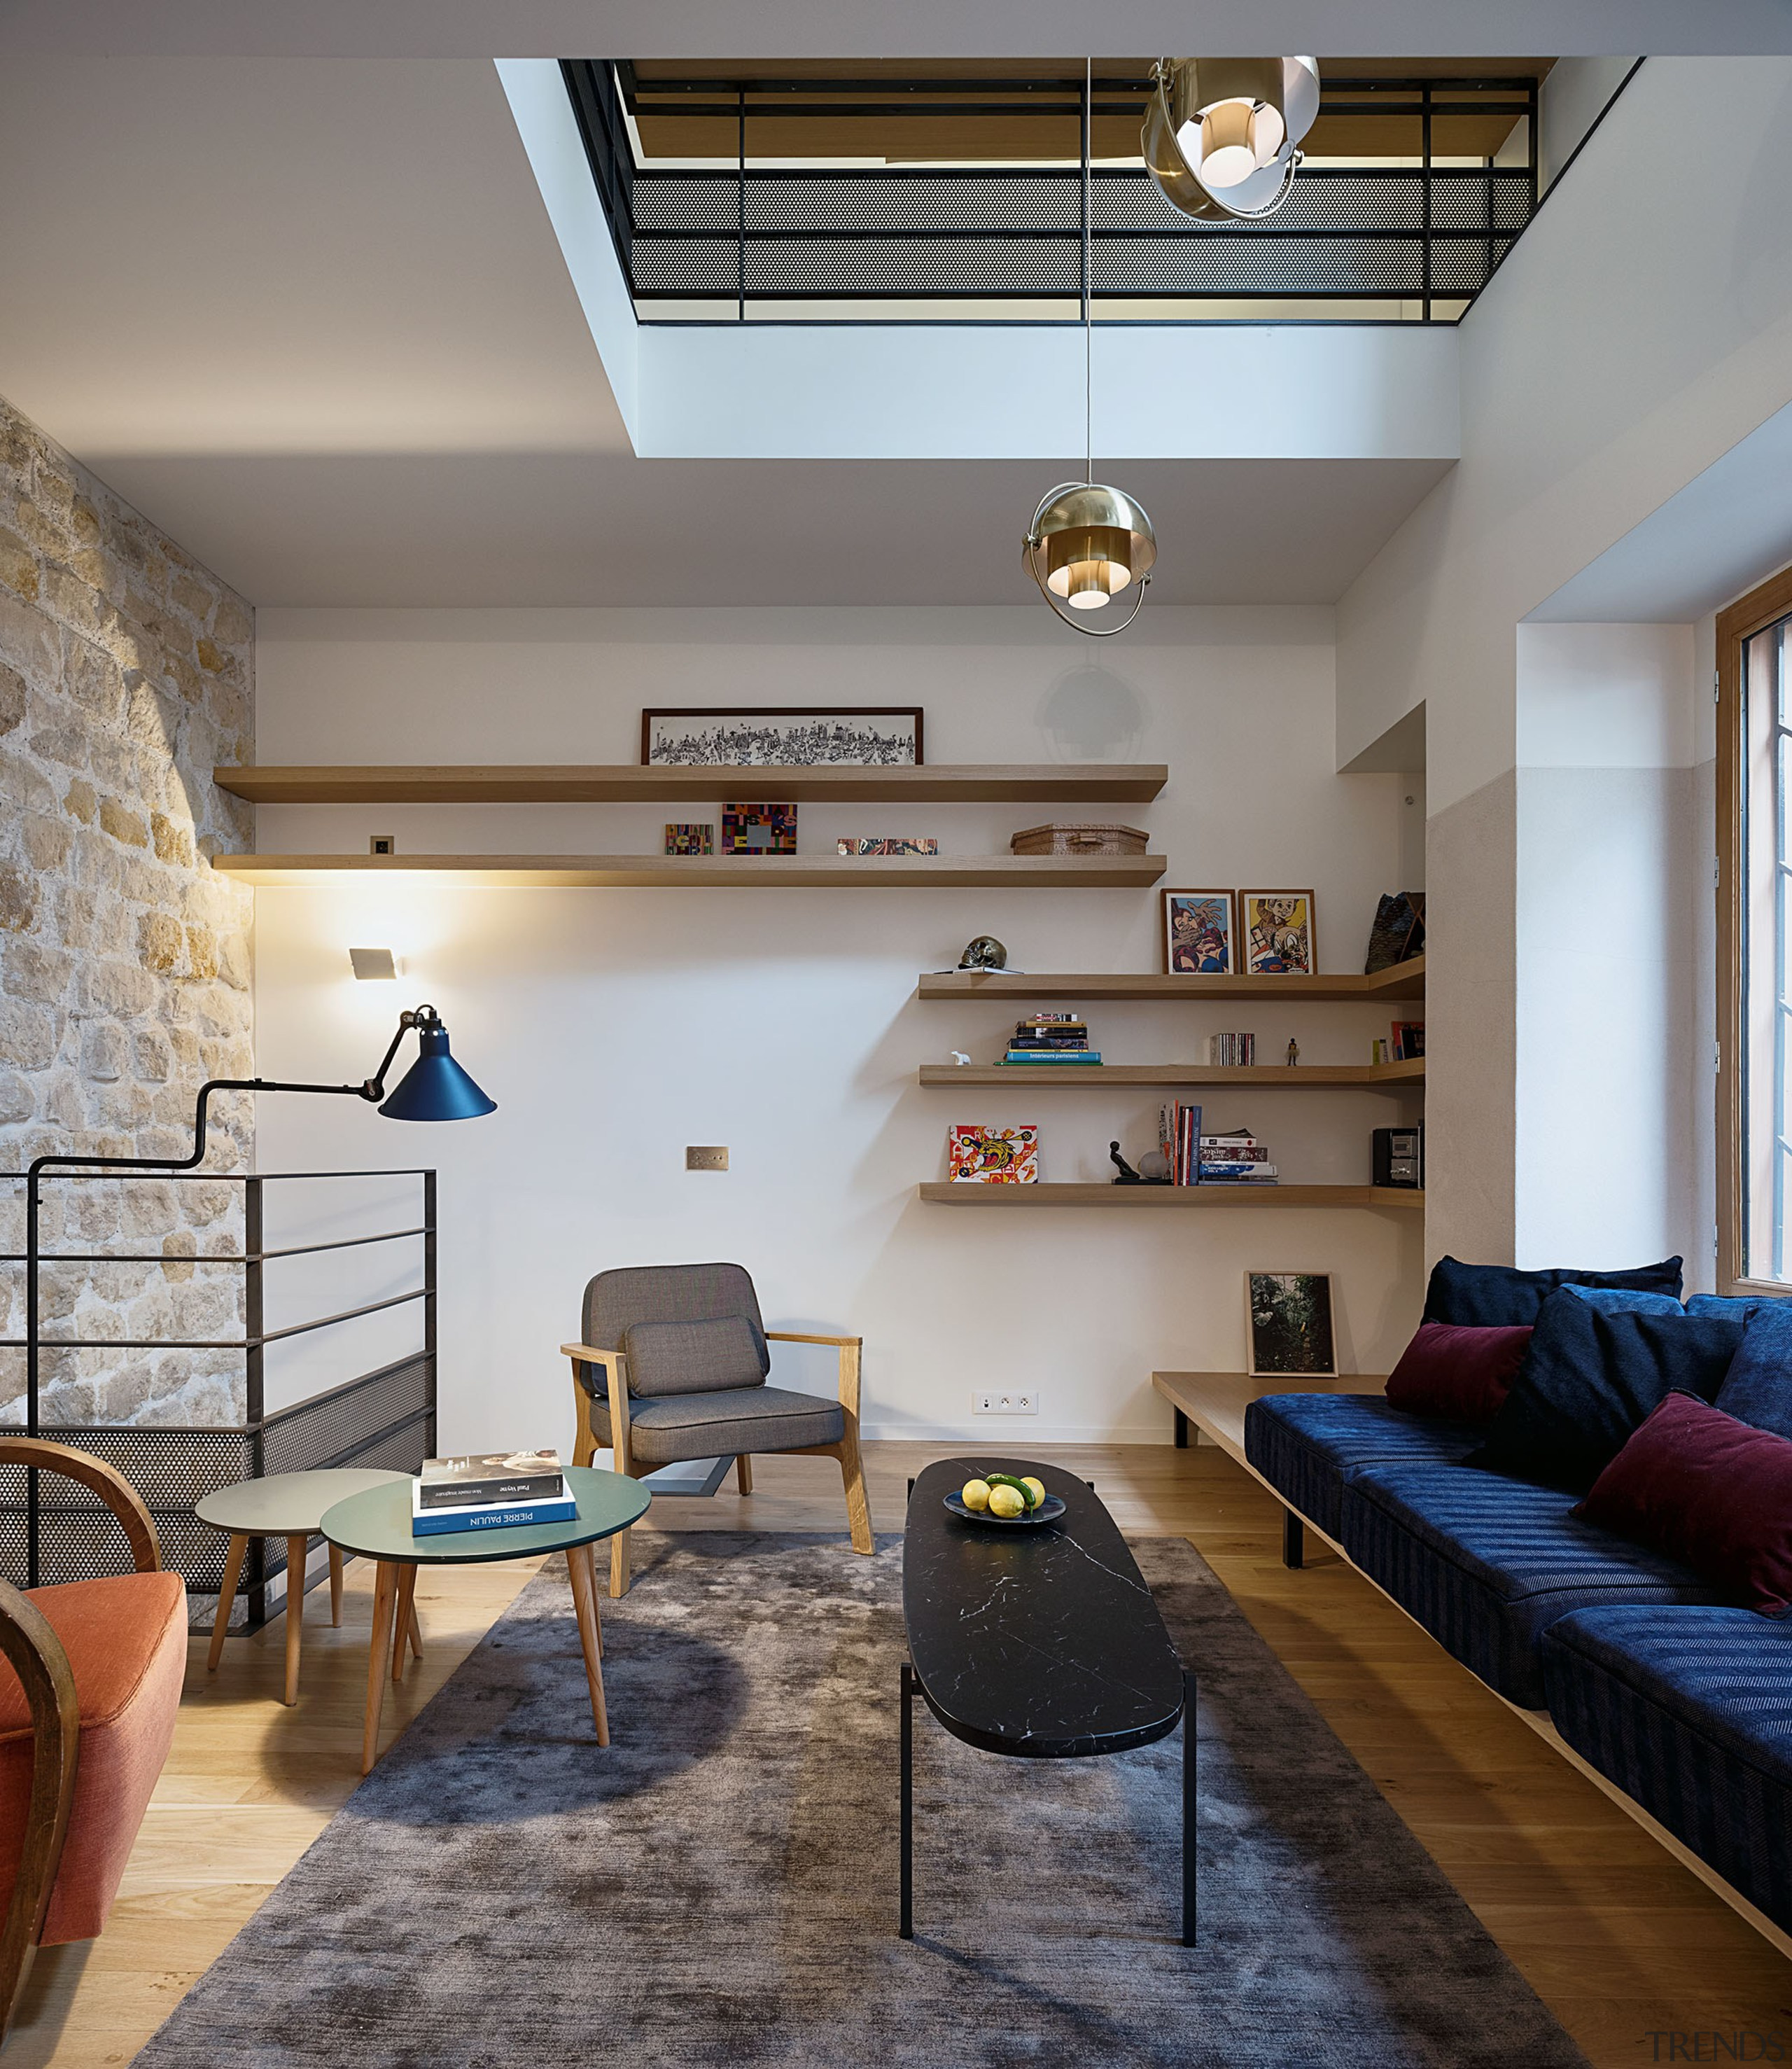 Living room and access to the basement - apartment, architecture, building, ceiling, coffee table, design, floor, flooring, furniture, home, house, interior design, living room, loft, property, real estate, room, table, wall, gray